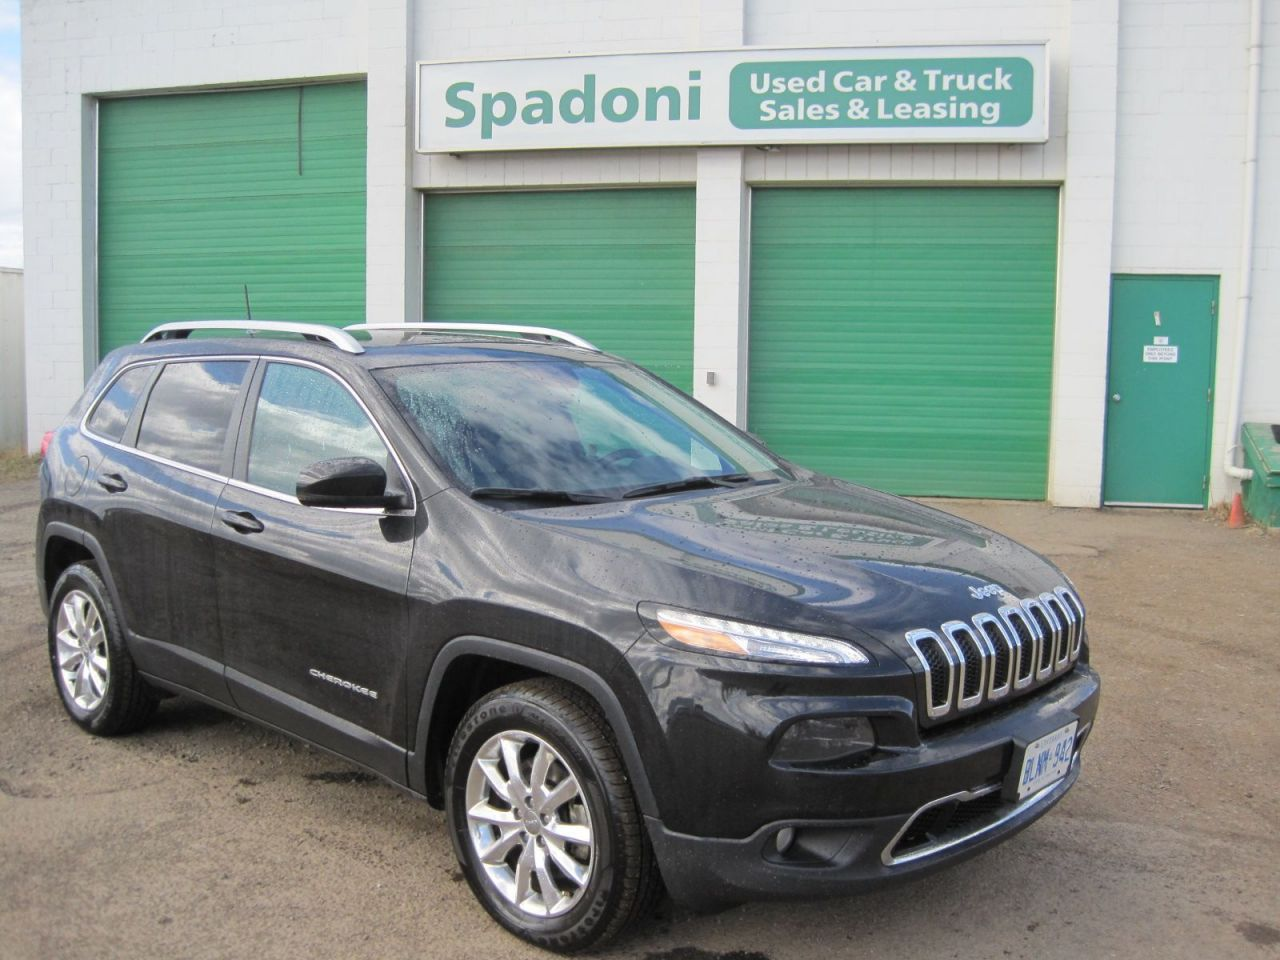 alton cherokee gallery edwardsville wood for altitude new image near river il htm sale red lease jeep exterior